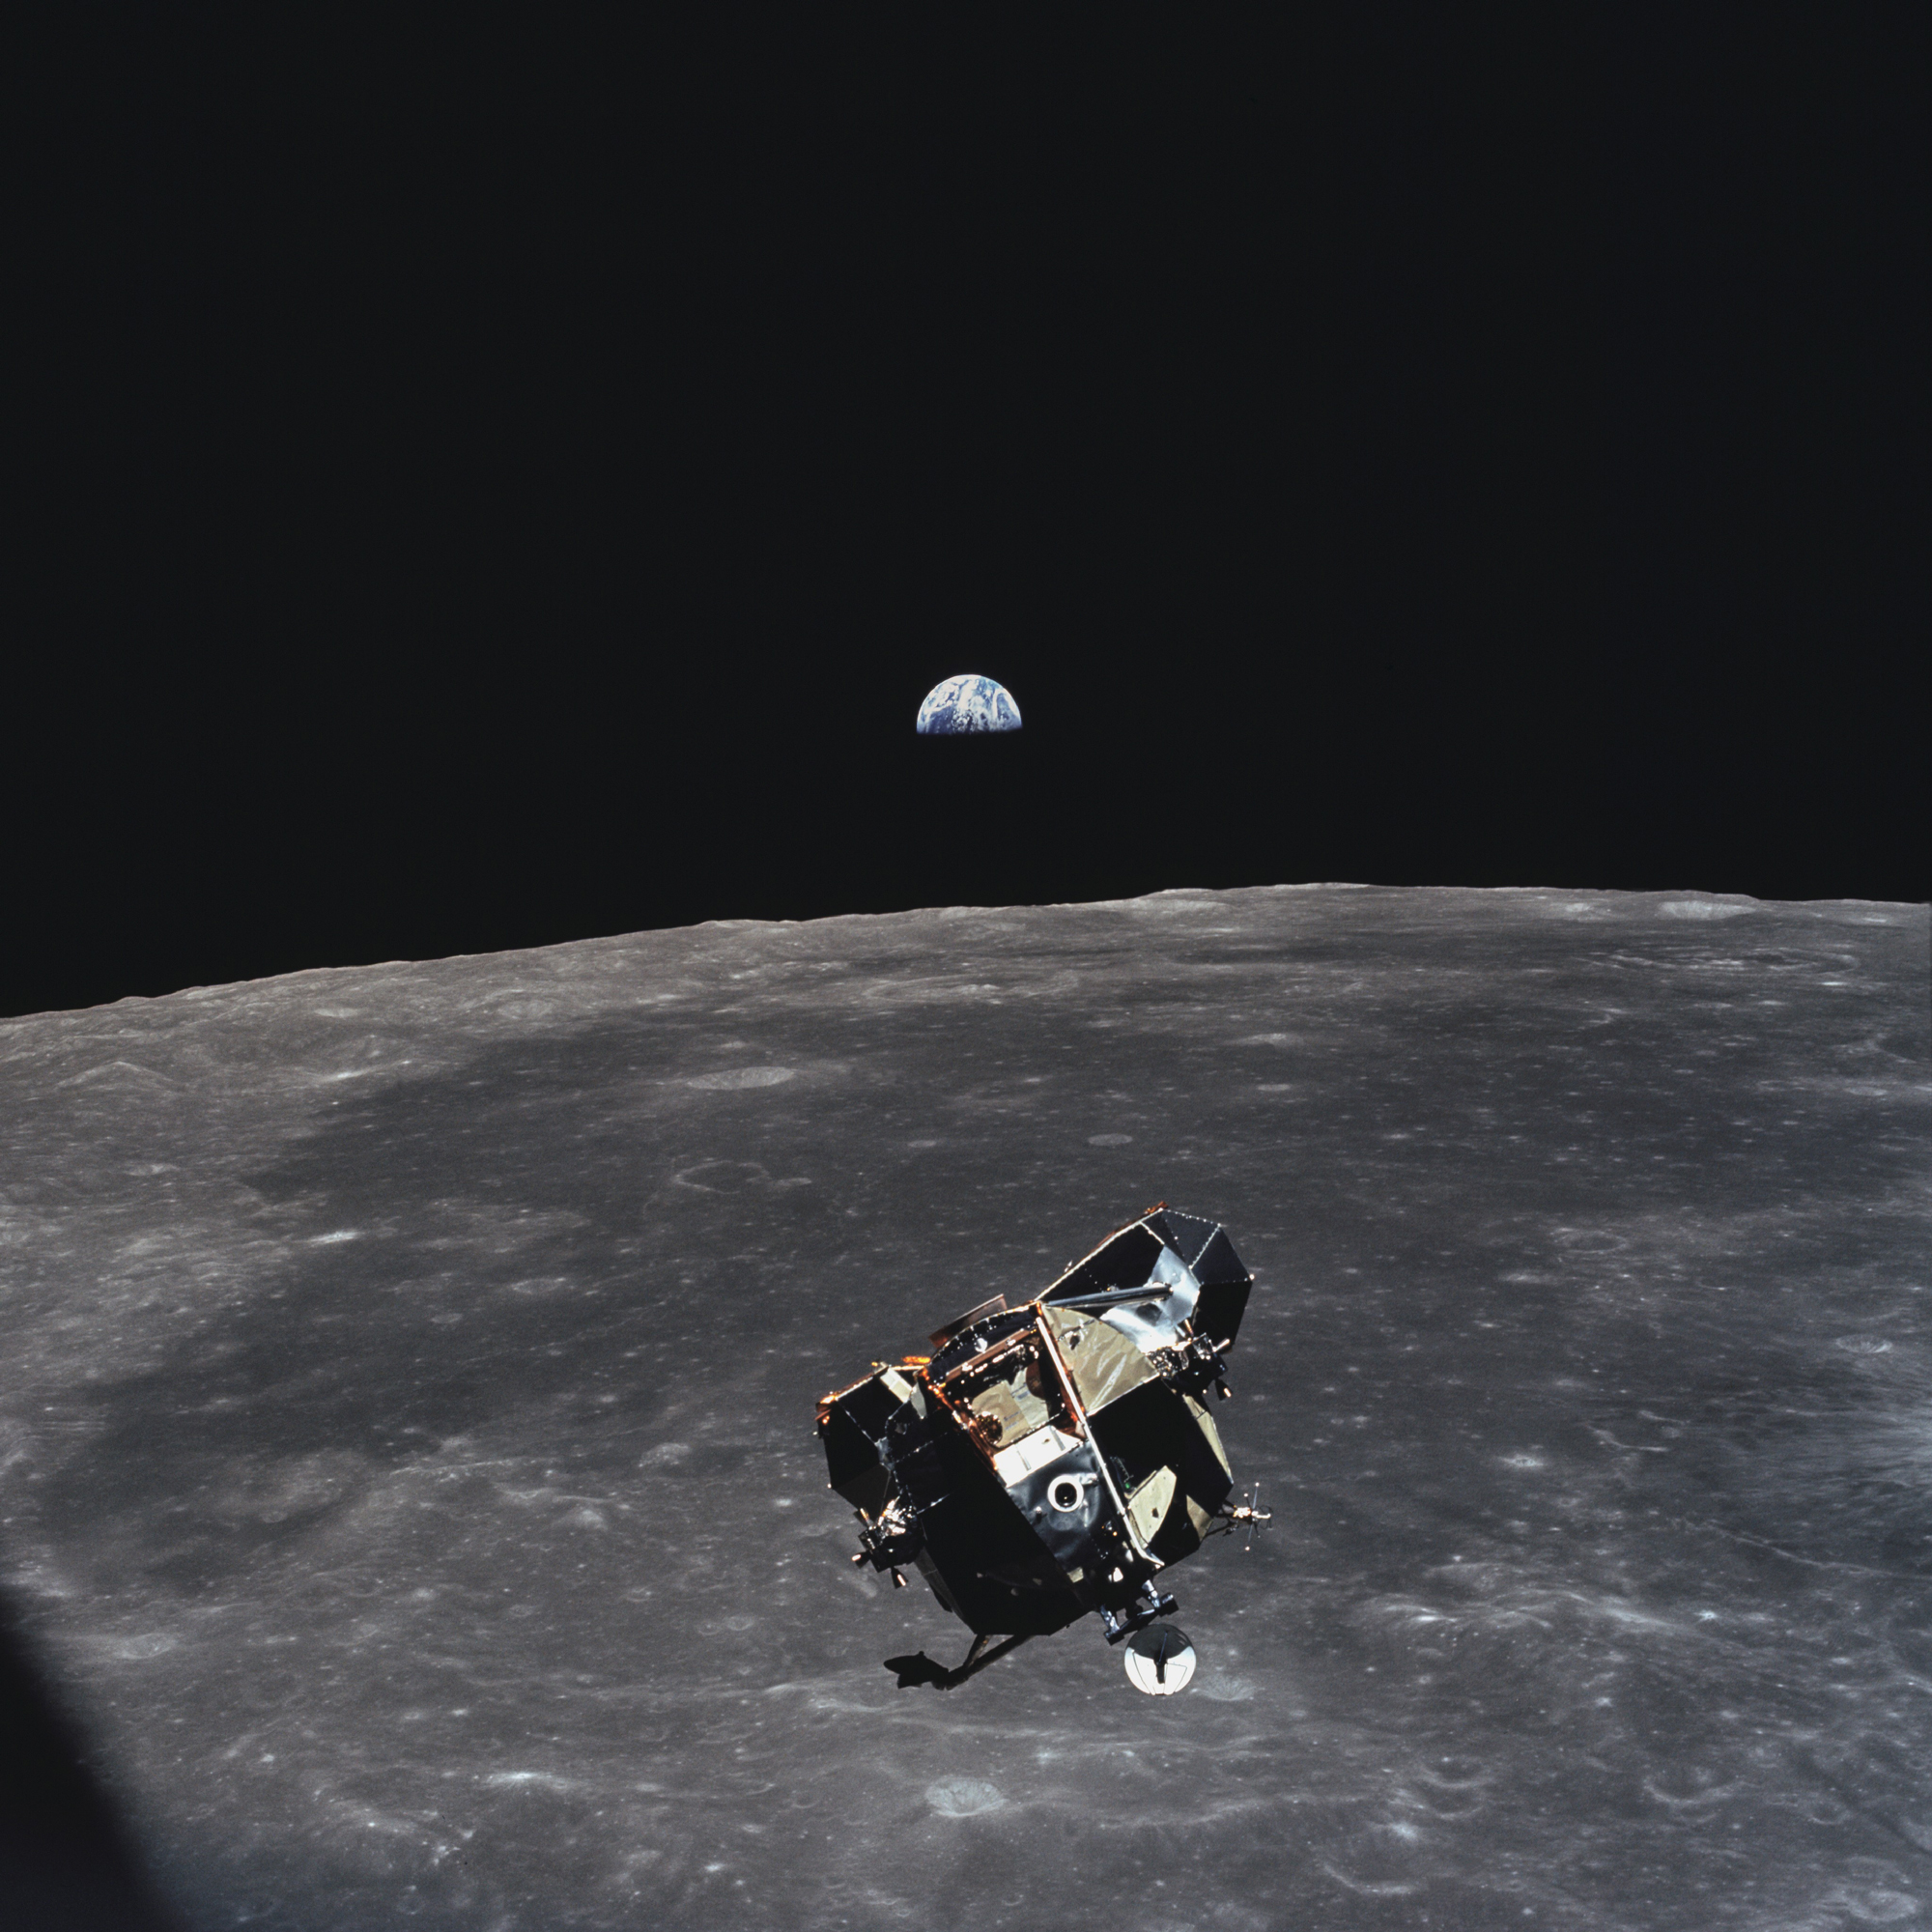 Apollo 11 Moon Landing Carried Big Risks for Astronauts, NASA